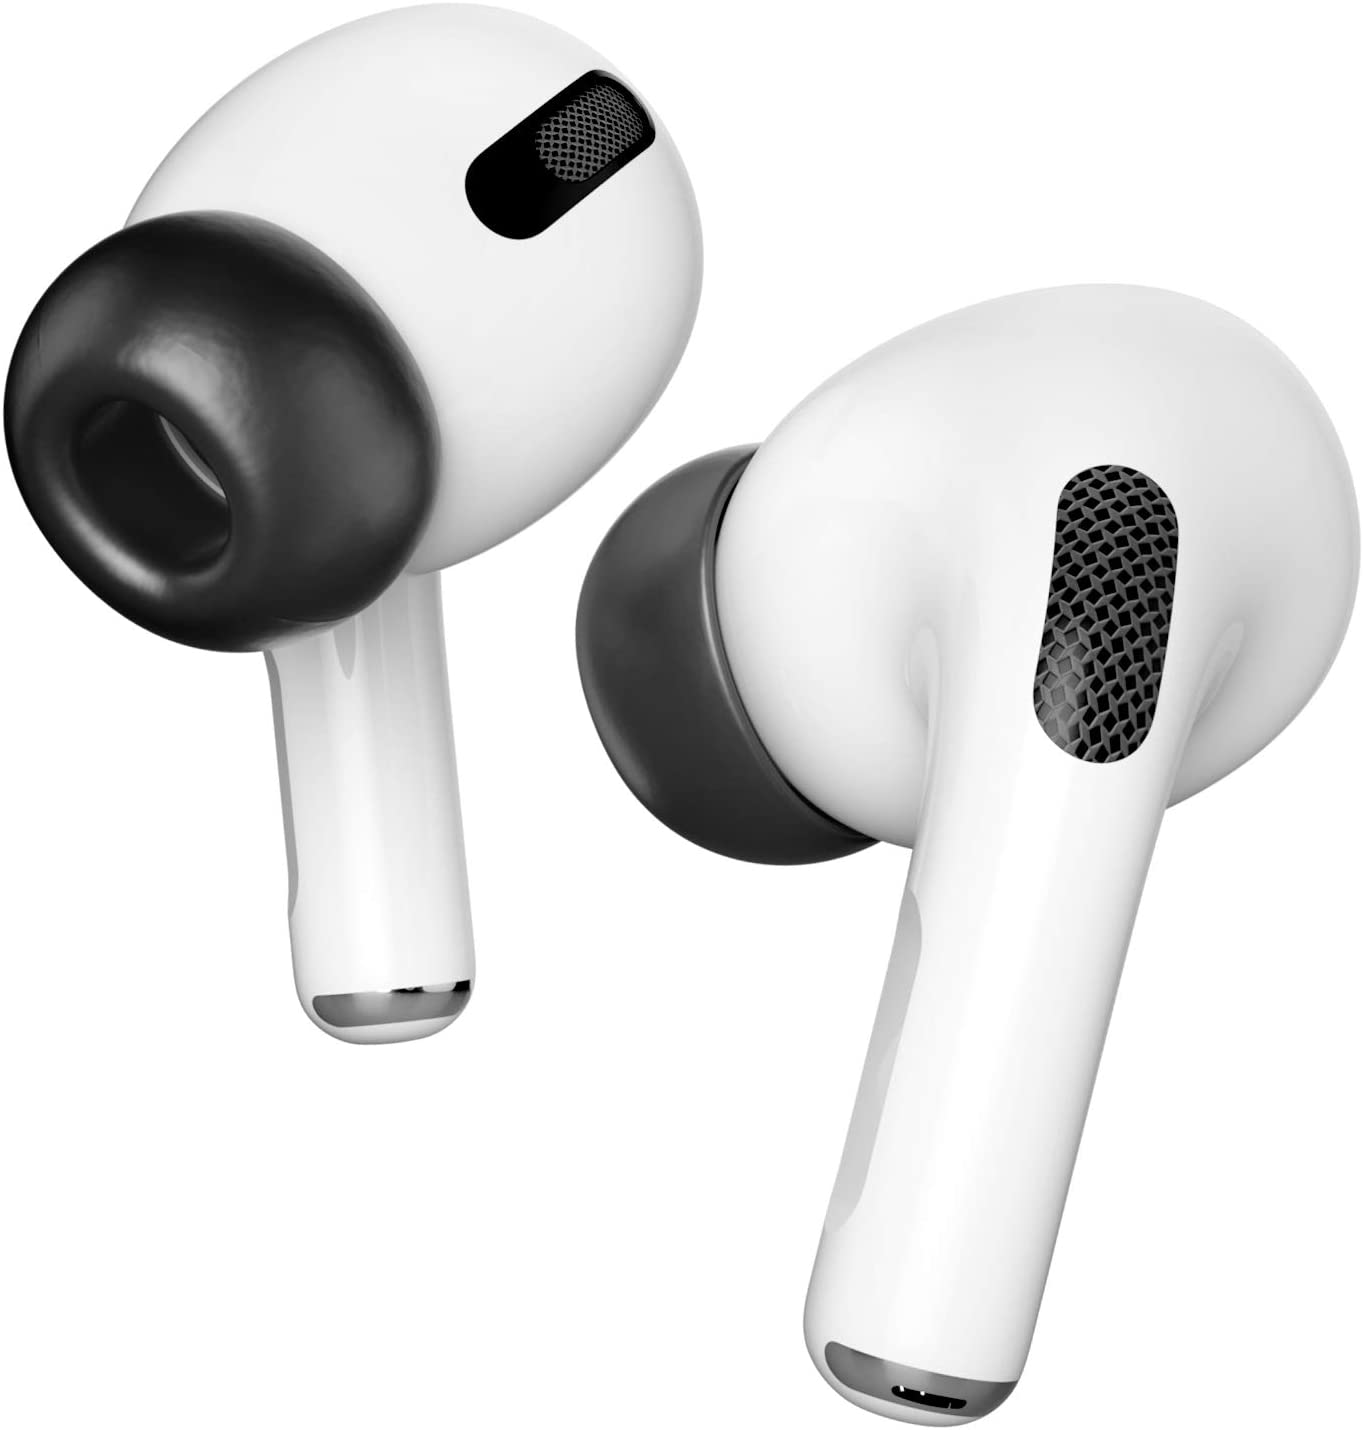 PZOZ 3 Pairs Replacement Ear Tips Compatible with Apple AirPods Pro, Memory Foam Reducing Noise in-Ear Eartips Accessories (Fit in The Charging Case) (Large, Black)